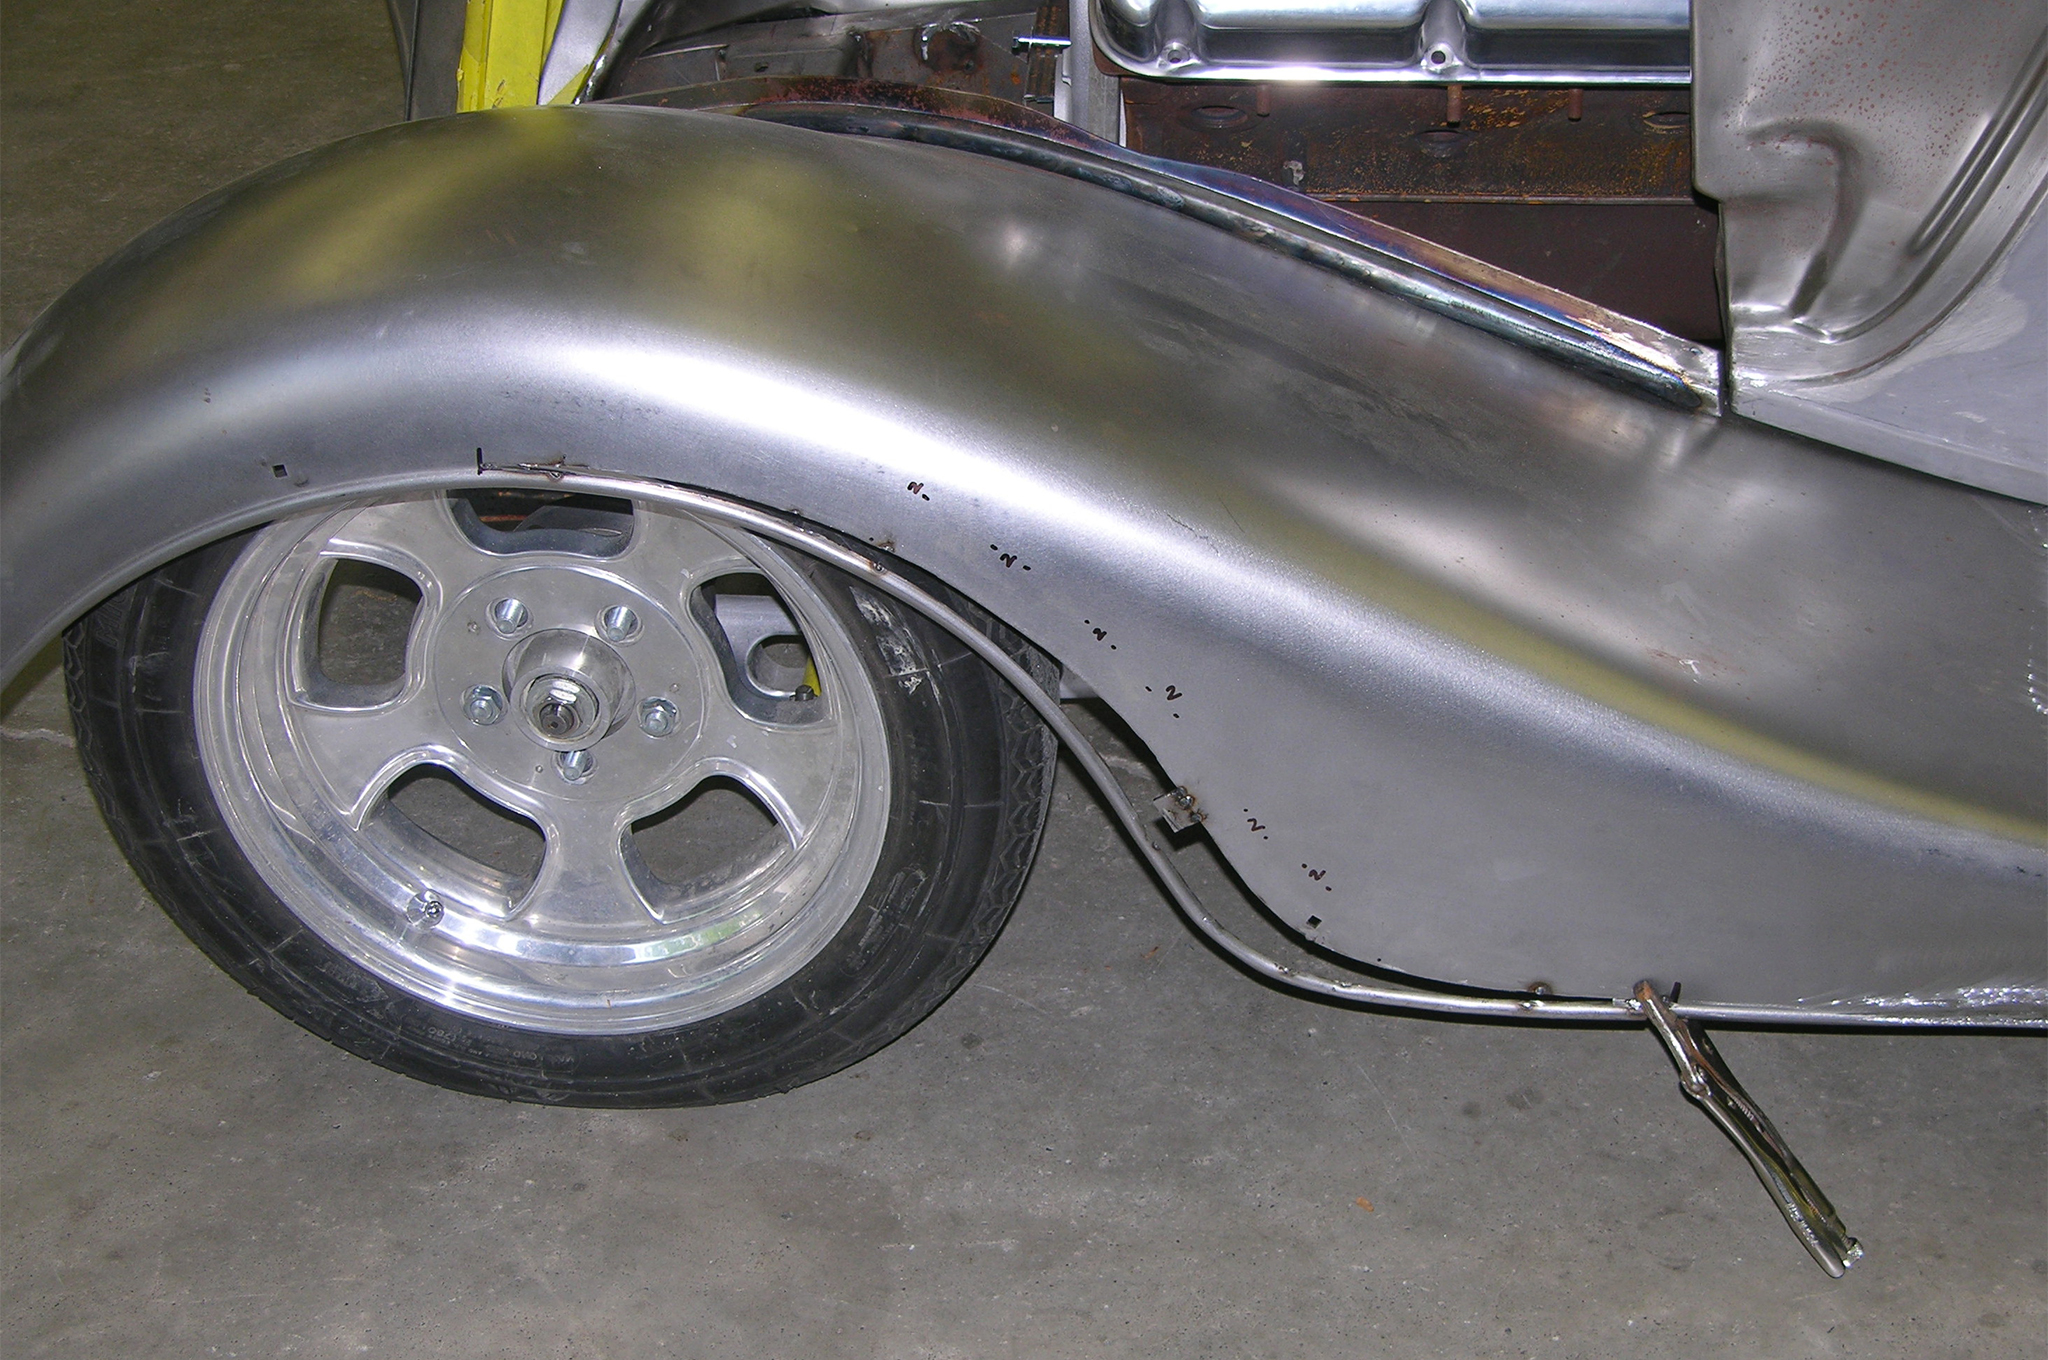 Since the front wheel centerline is slightly ahead of where it would be located relative to the stock location within the fender, the fender bead gets tightened up around the tire, which gives the illusion the car is lower and also follows the wheel arch better now that the car is so much lower.